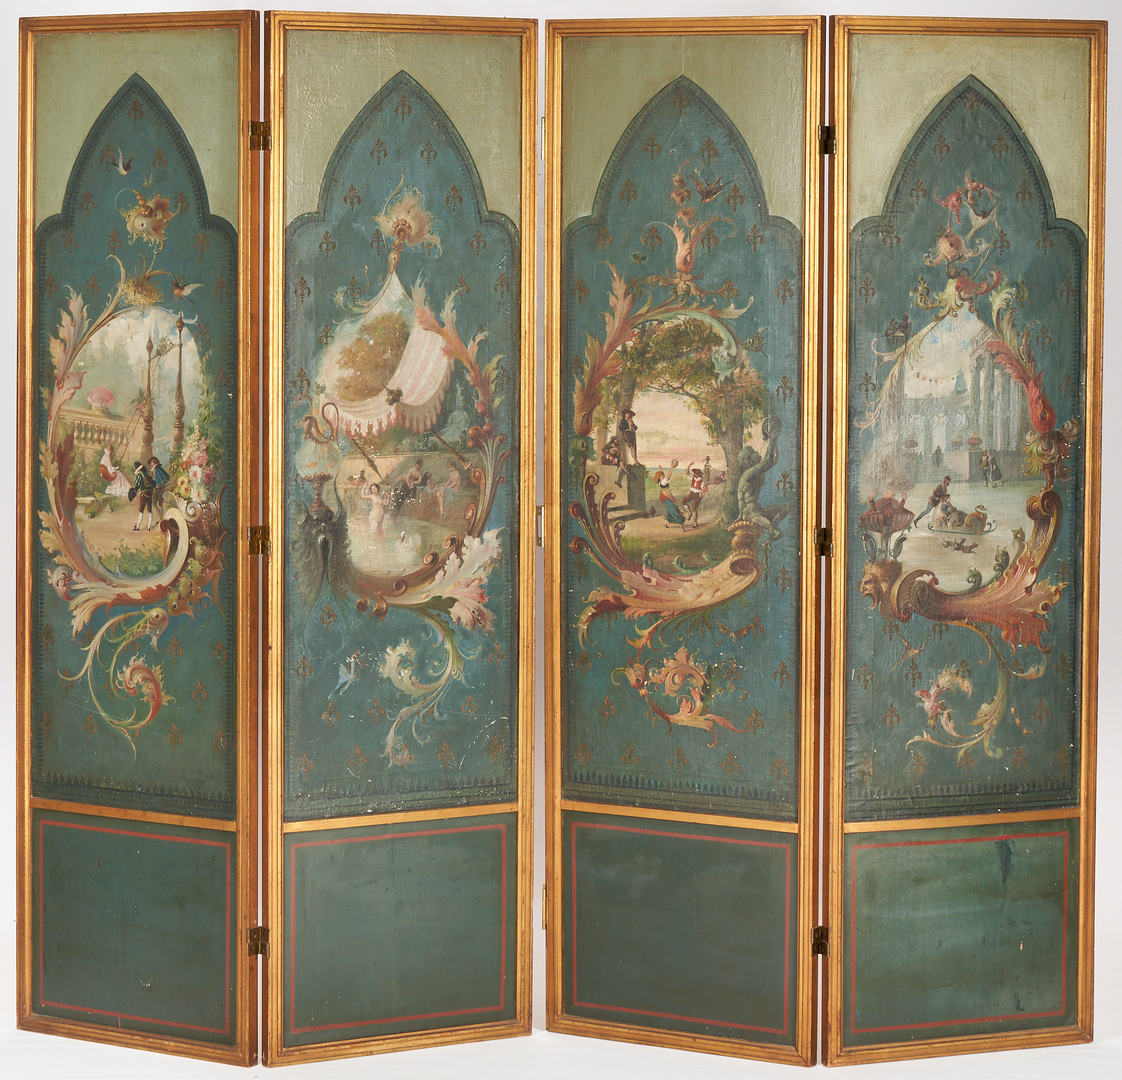 Lot 242: 4 Panel Hand Painted French Screen